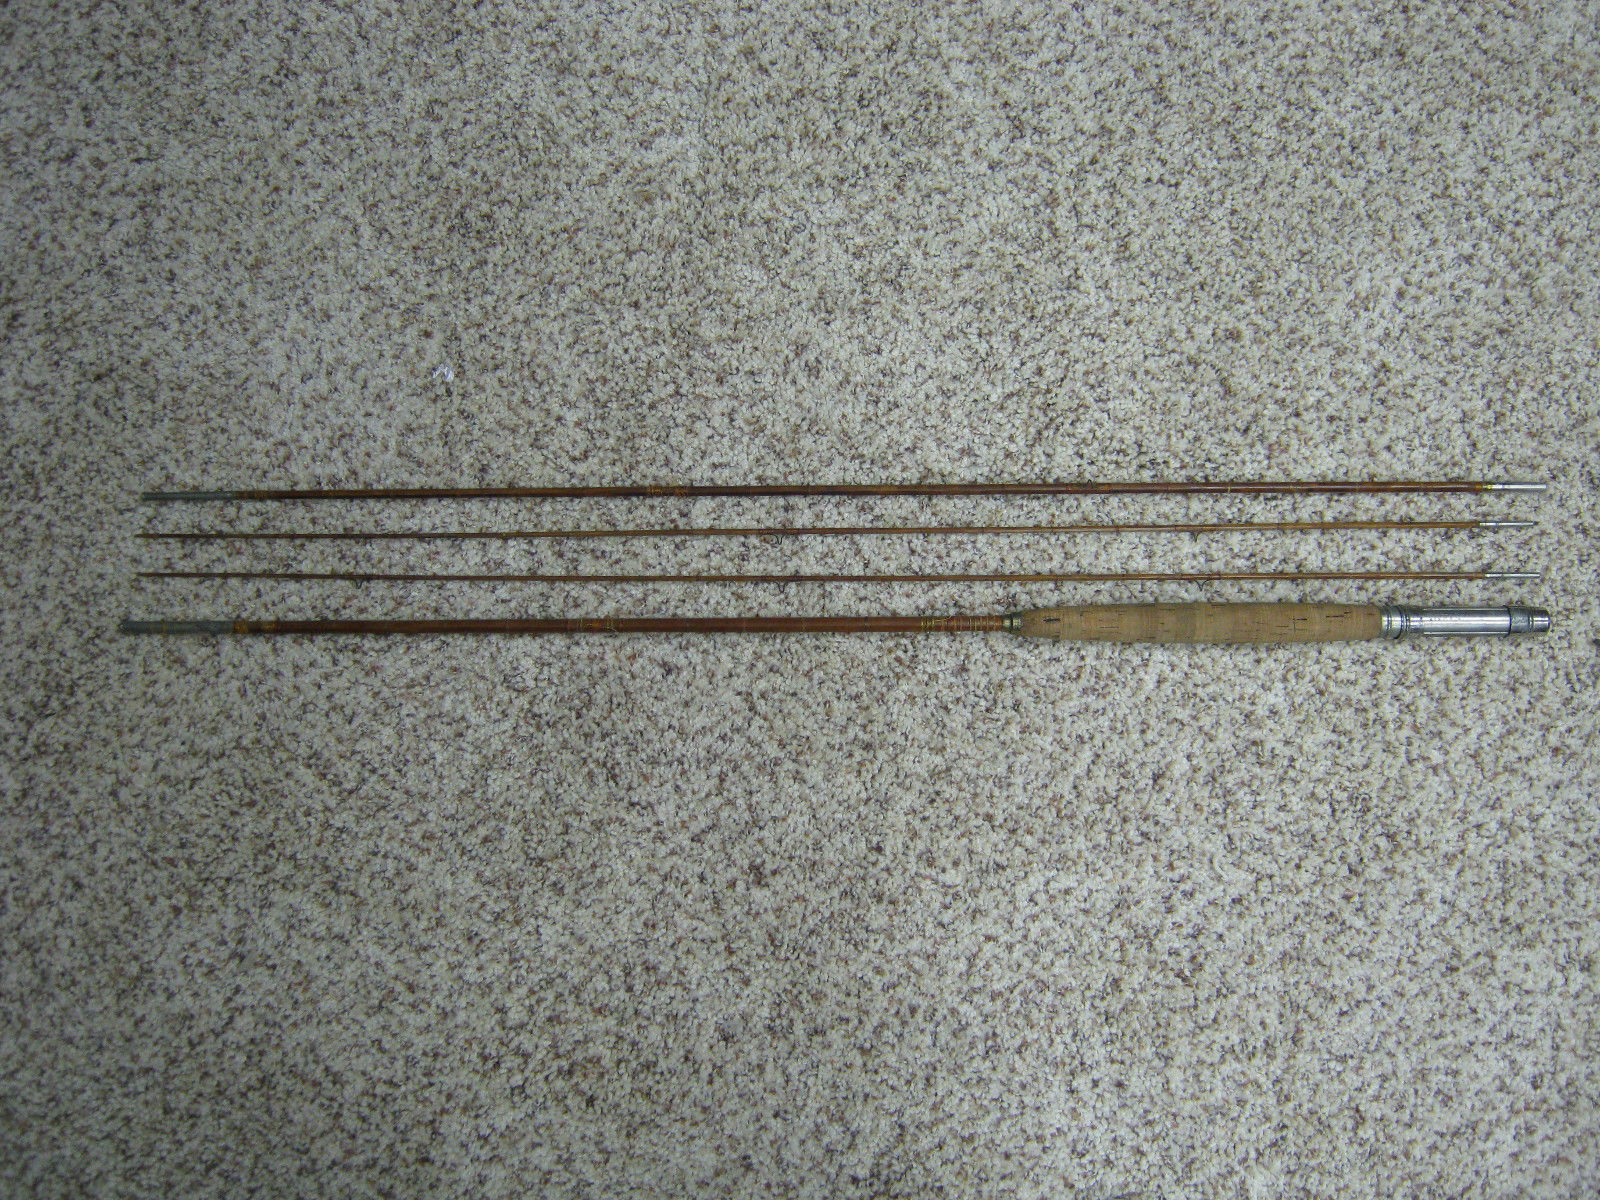 KingFisher Bamboo Vintage Fly Rod with case King  Fisher  40% off